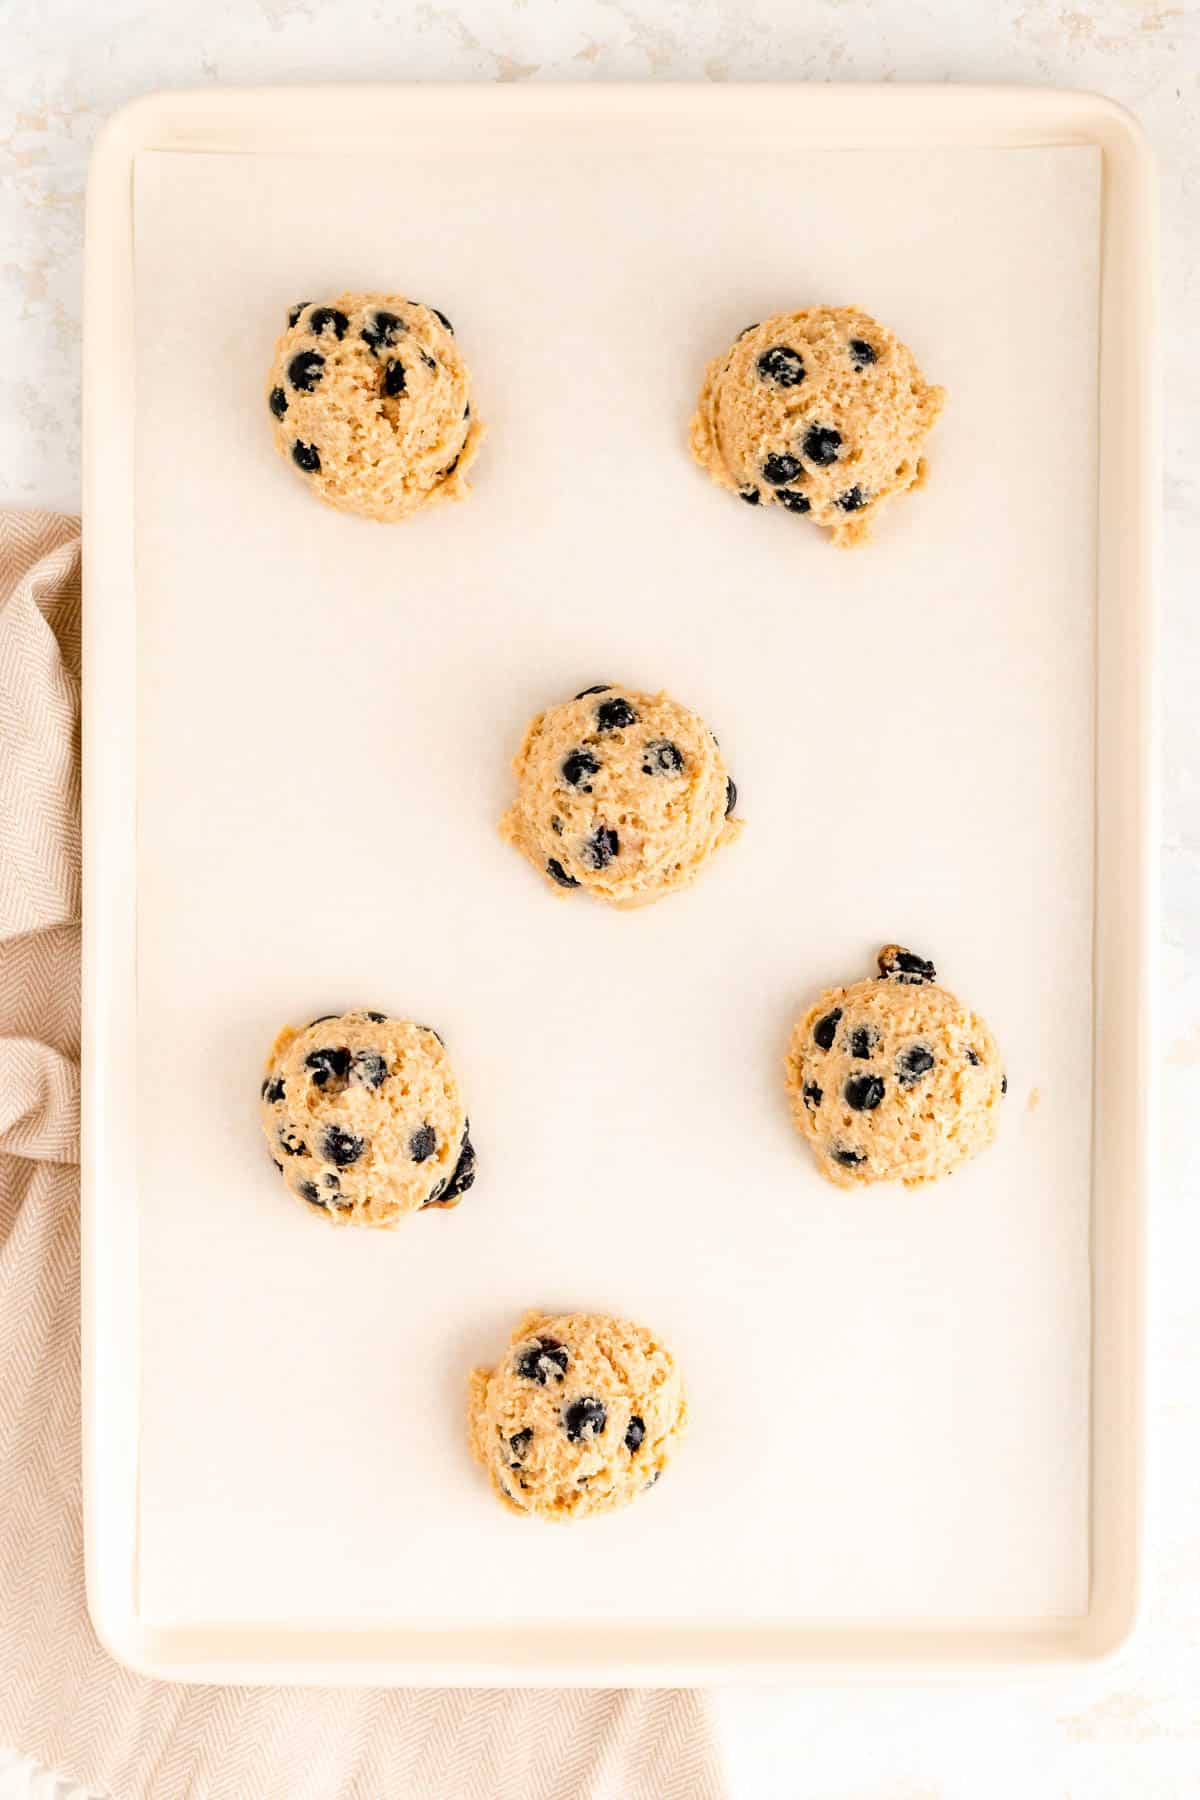 scooped blueberry scone batter on a white parchment lined baking sheet